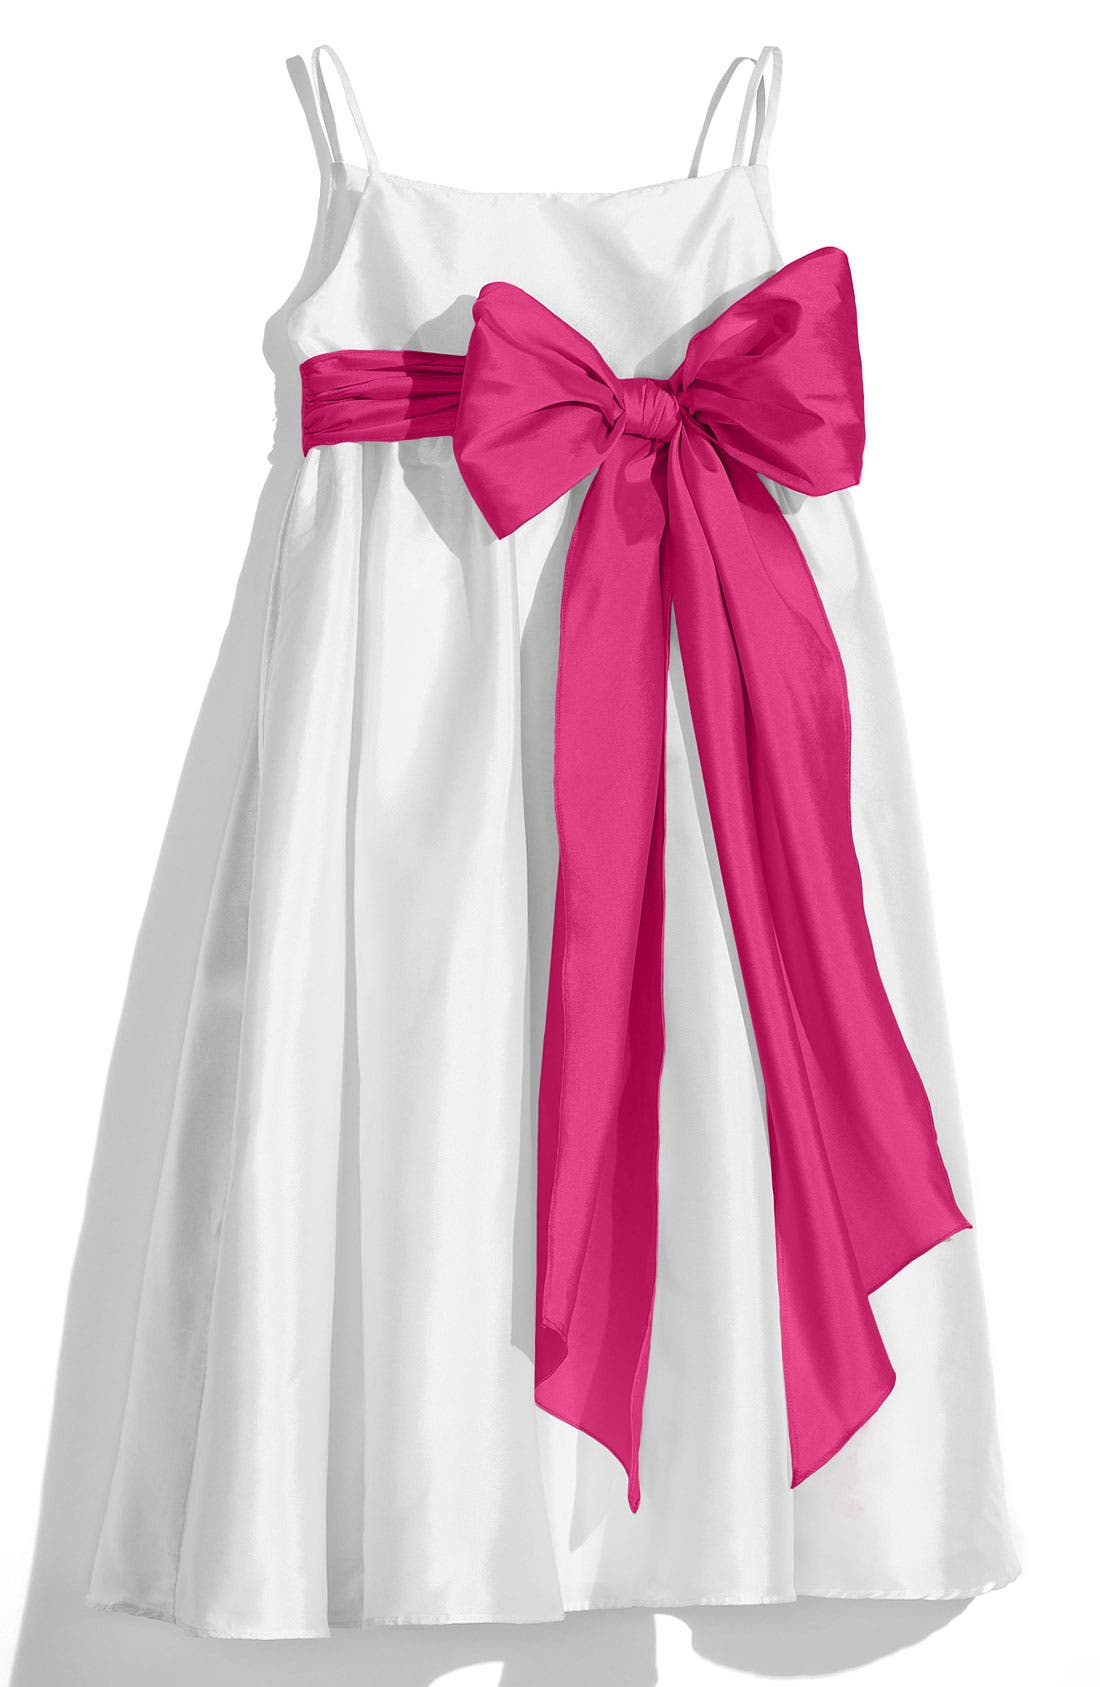 White Sleeveless Empire Waist Taffeta Dress,                             Main thumbnail 1, color,                             651